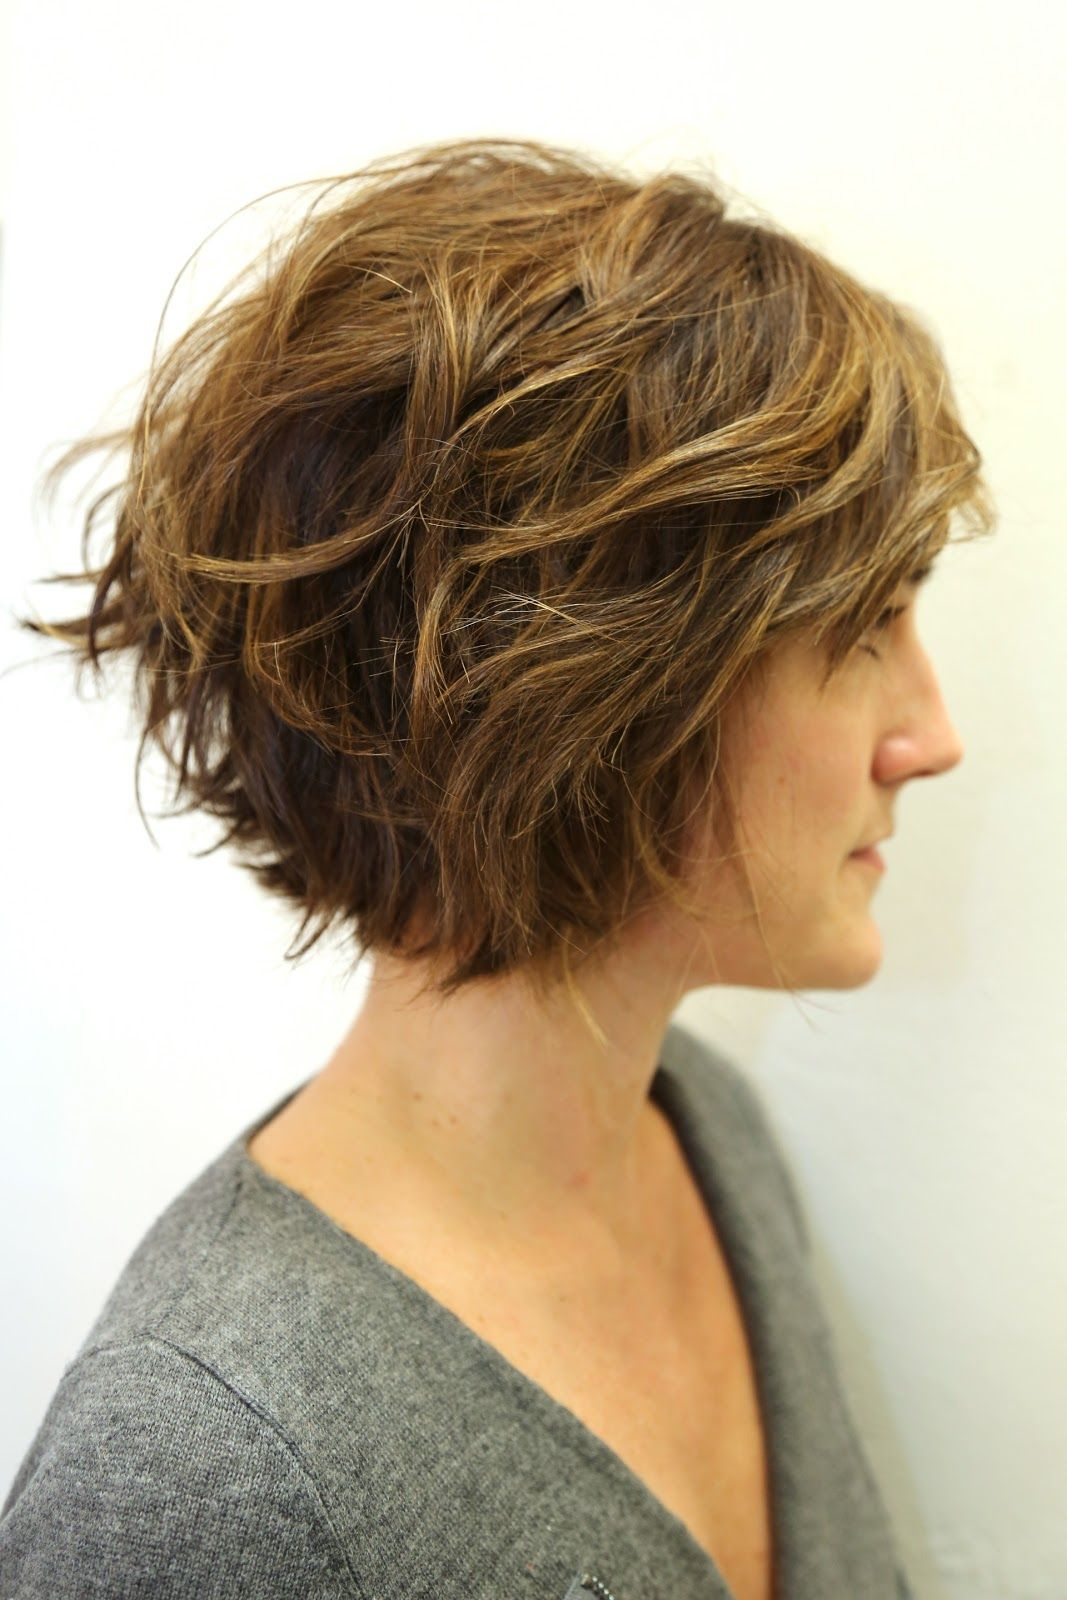 Latest Short Hairstyles for Winter   Best Winter Haircut